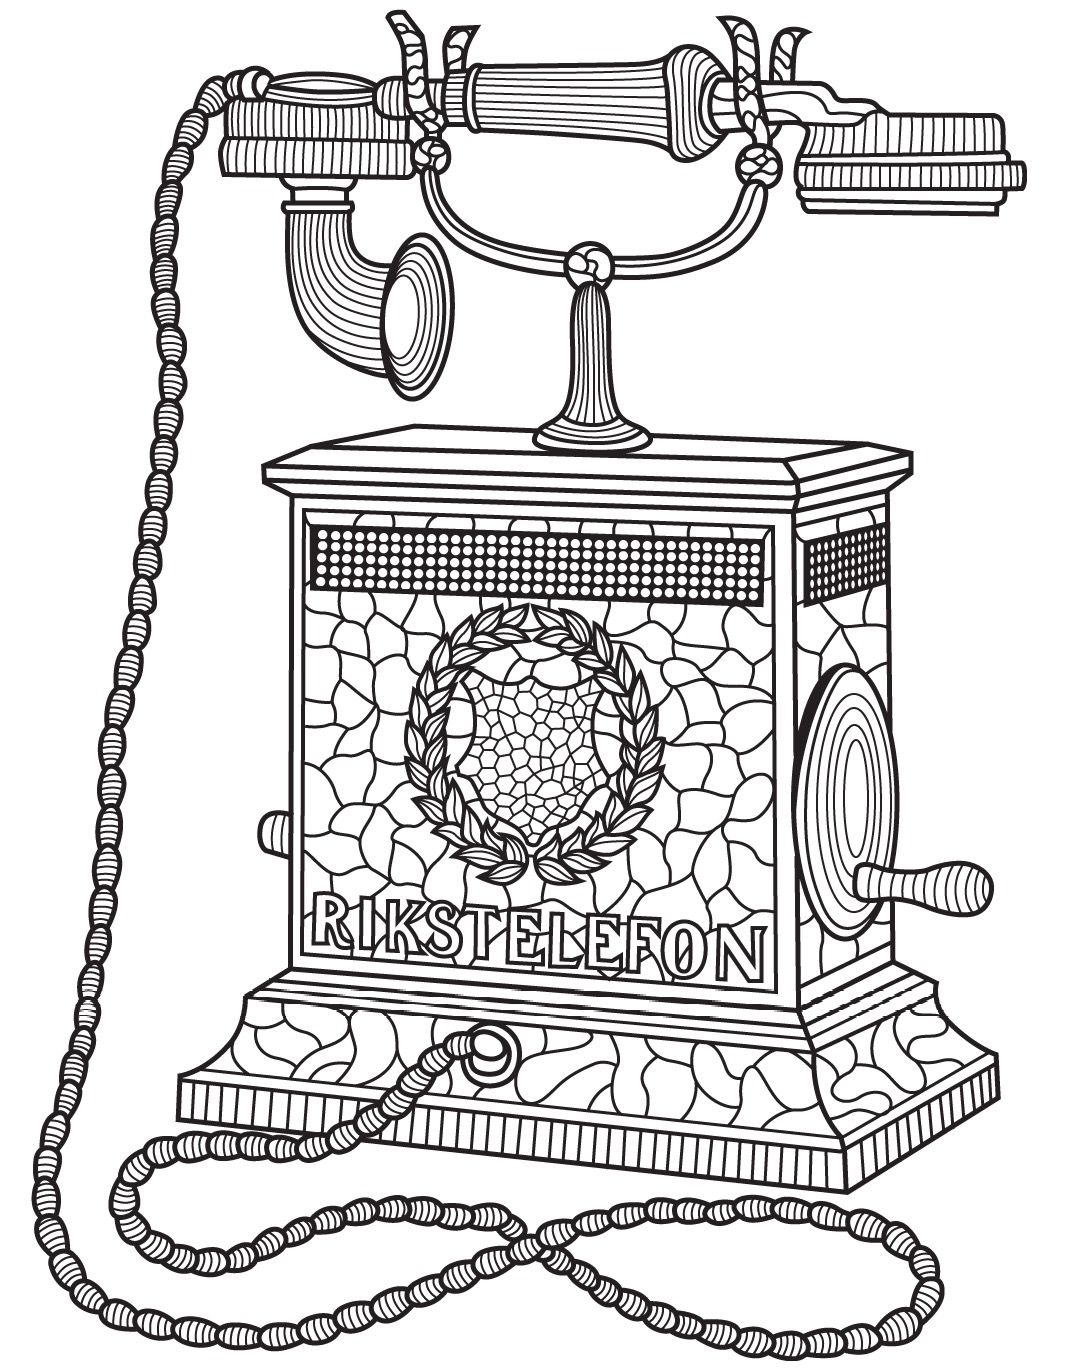 Antique Telephone Colorish Coloring App For Adults By